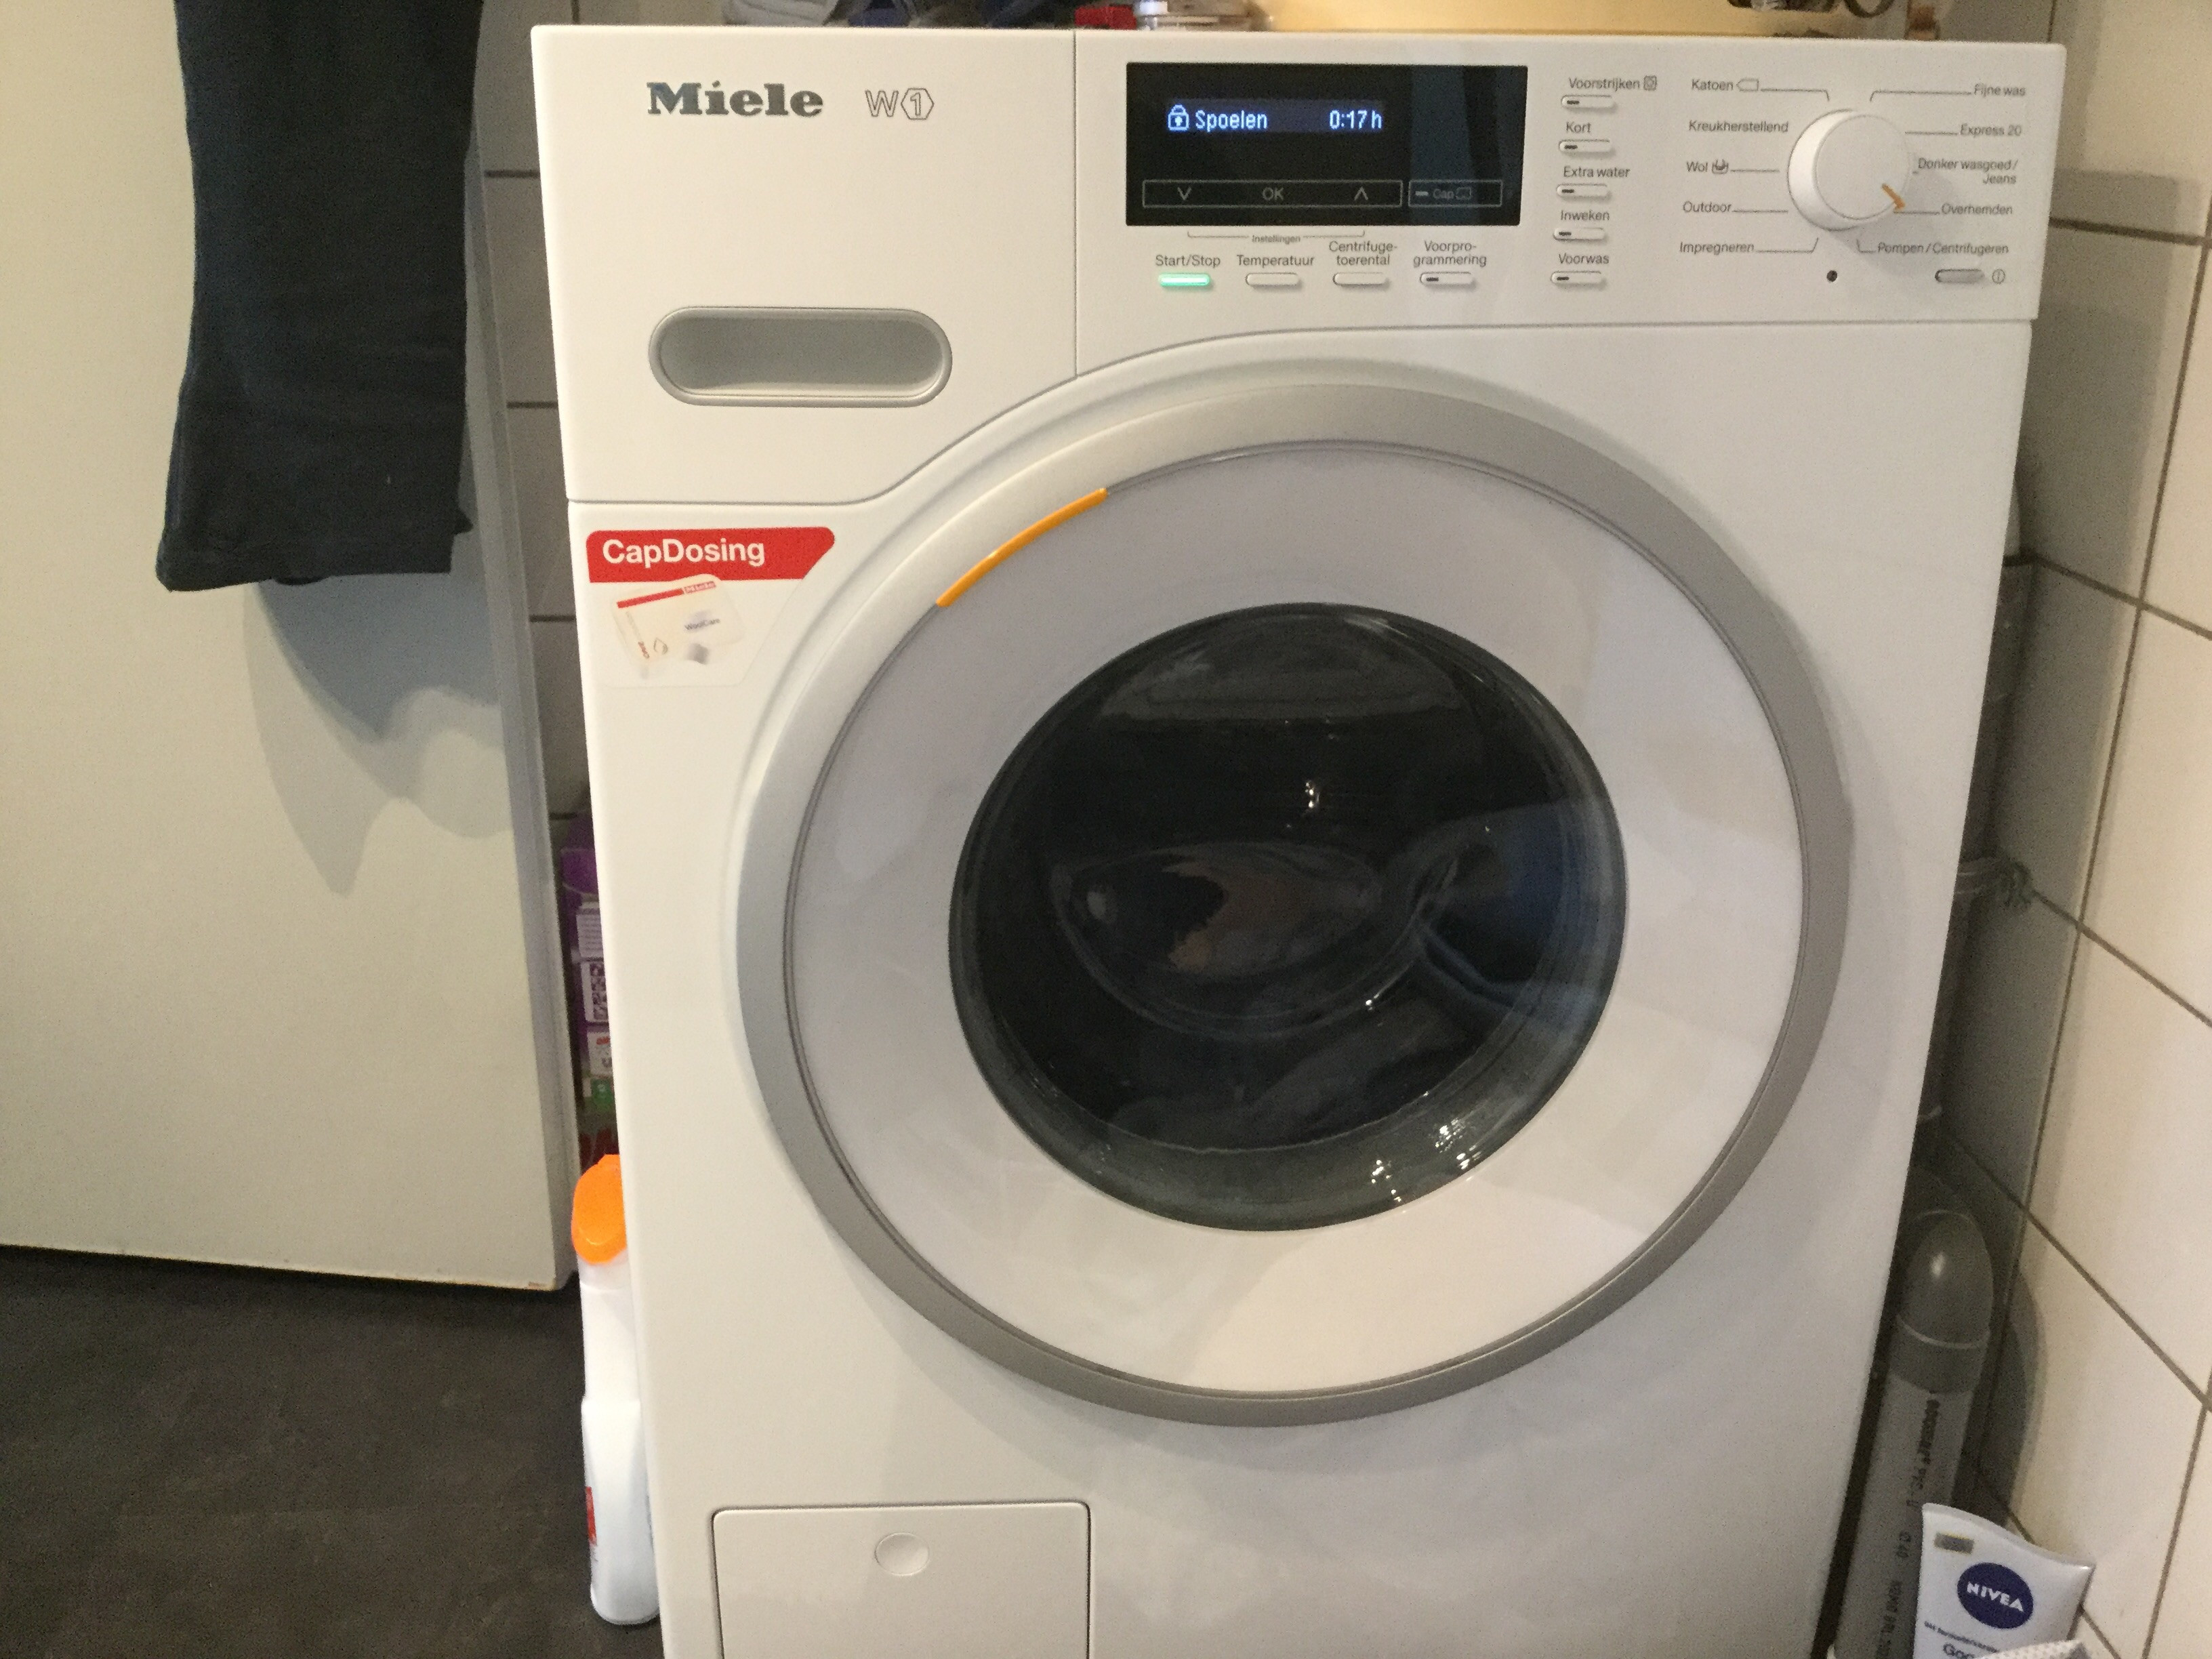 Miele Wmb Reviews Over Miele Wmb 120 Wcs W1 Coolblue Voor 23 59u Morgen